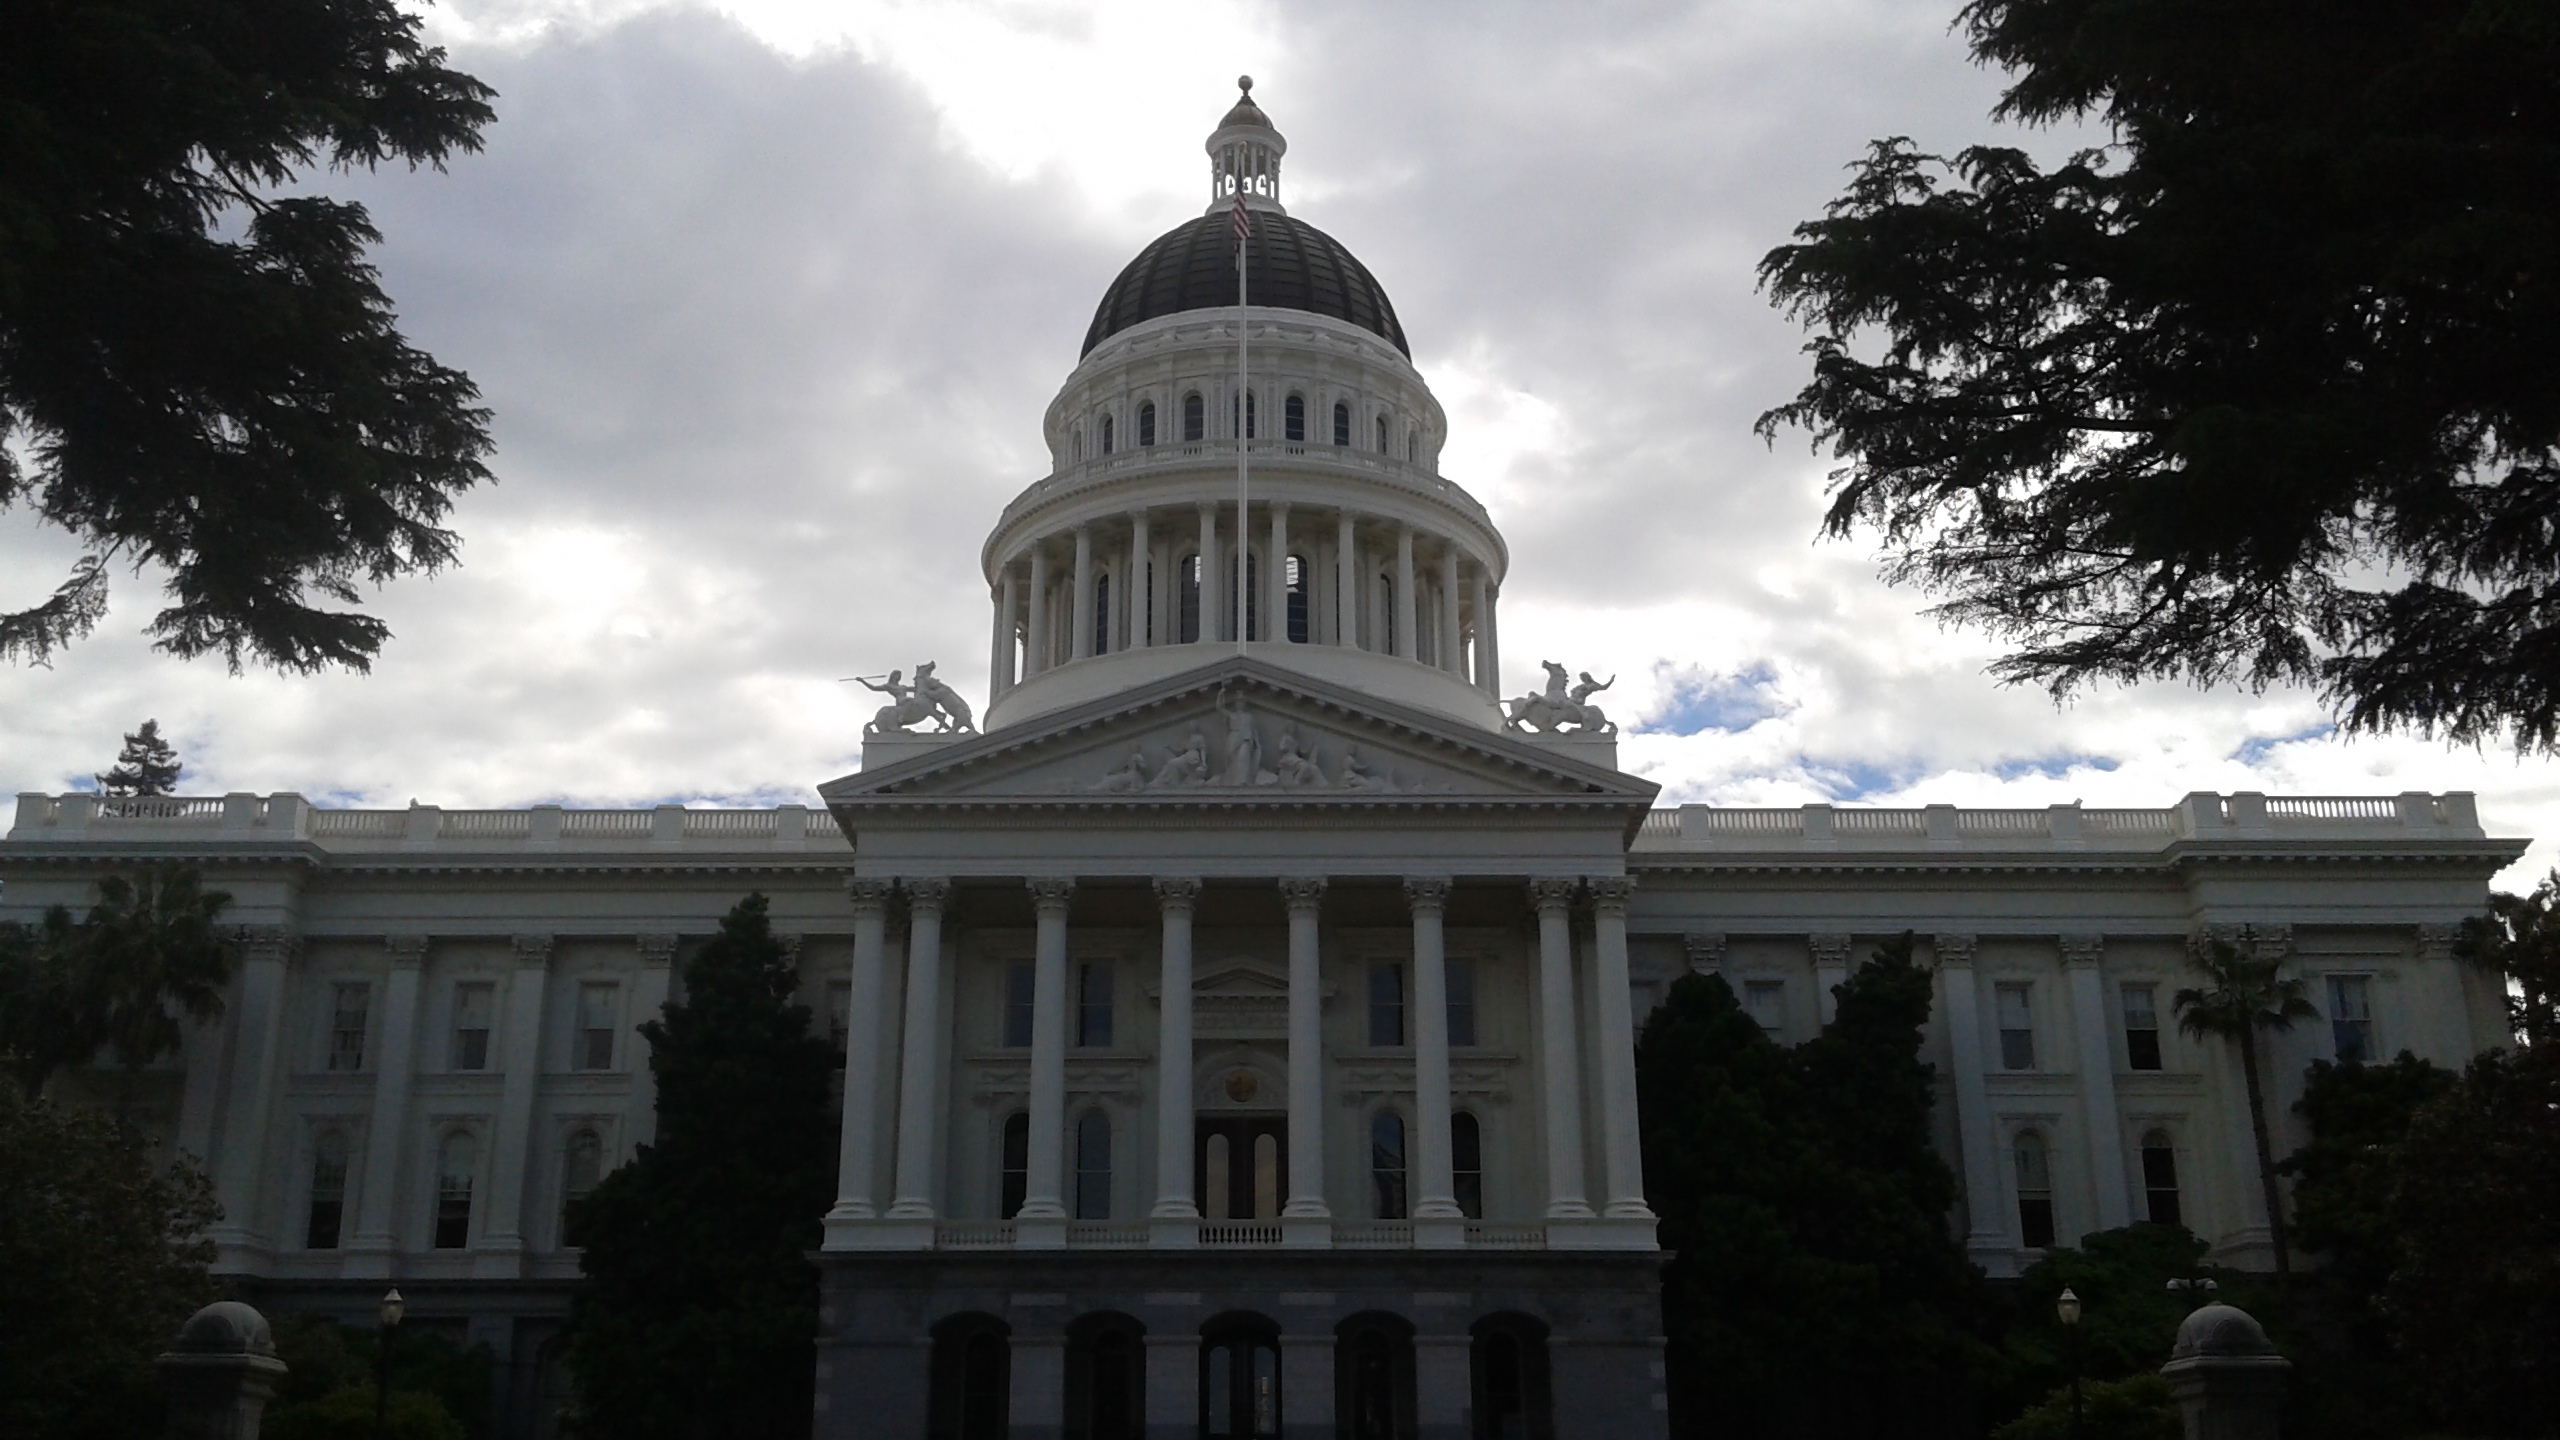 Photograph of the California State Capitol Building